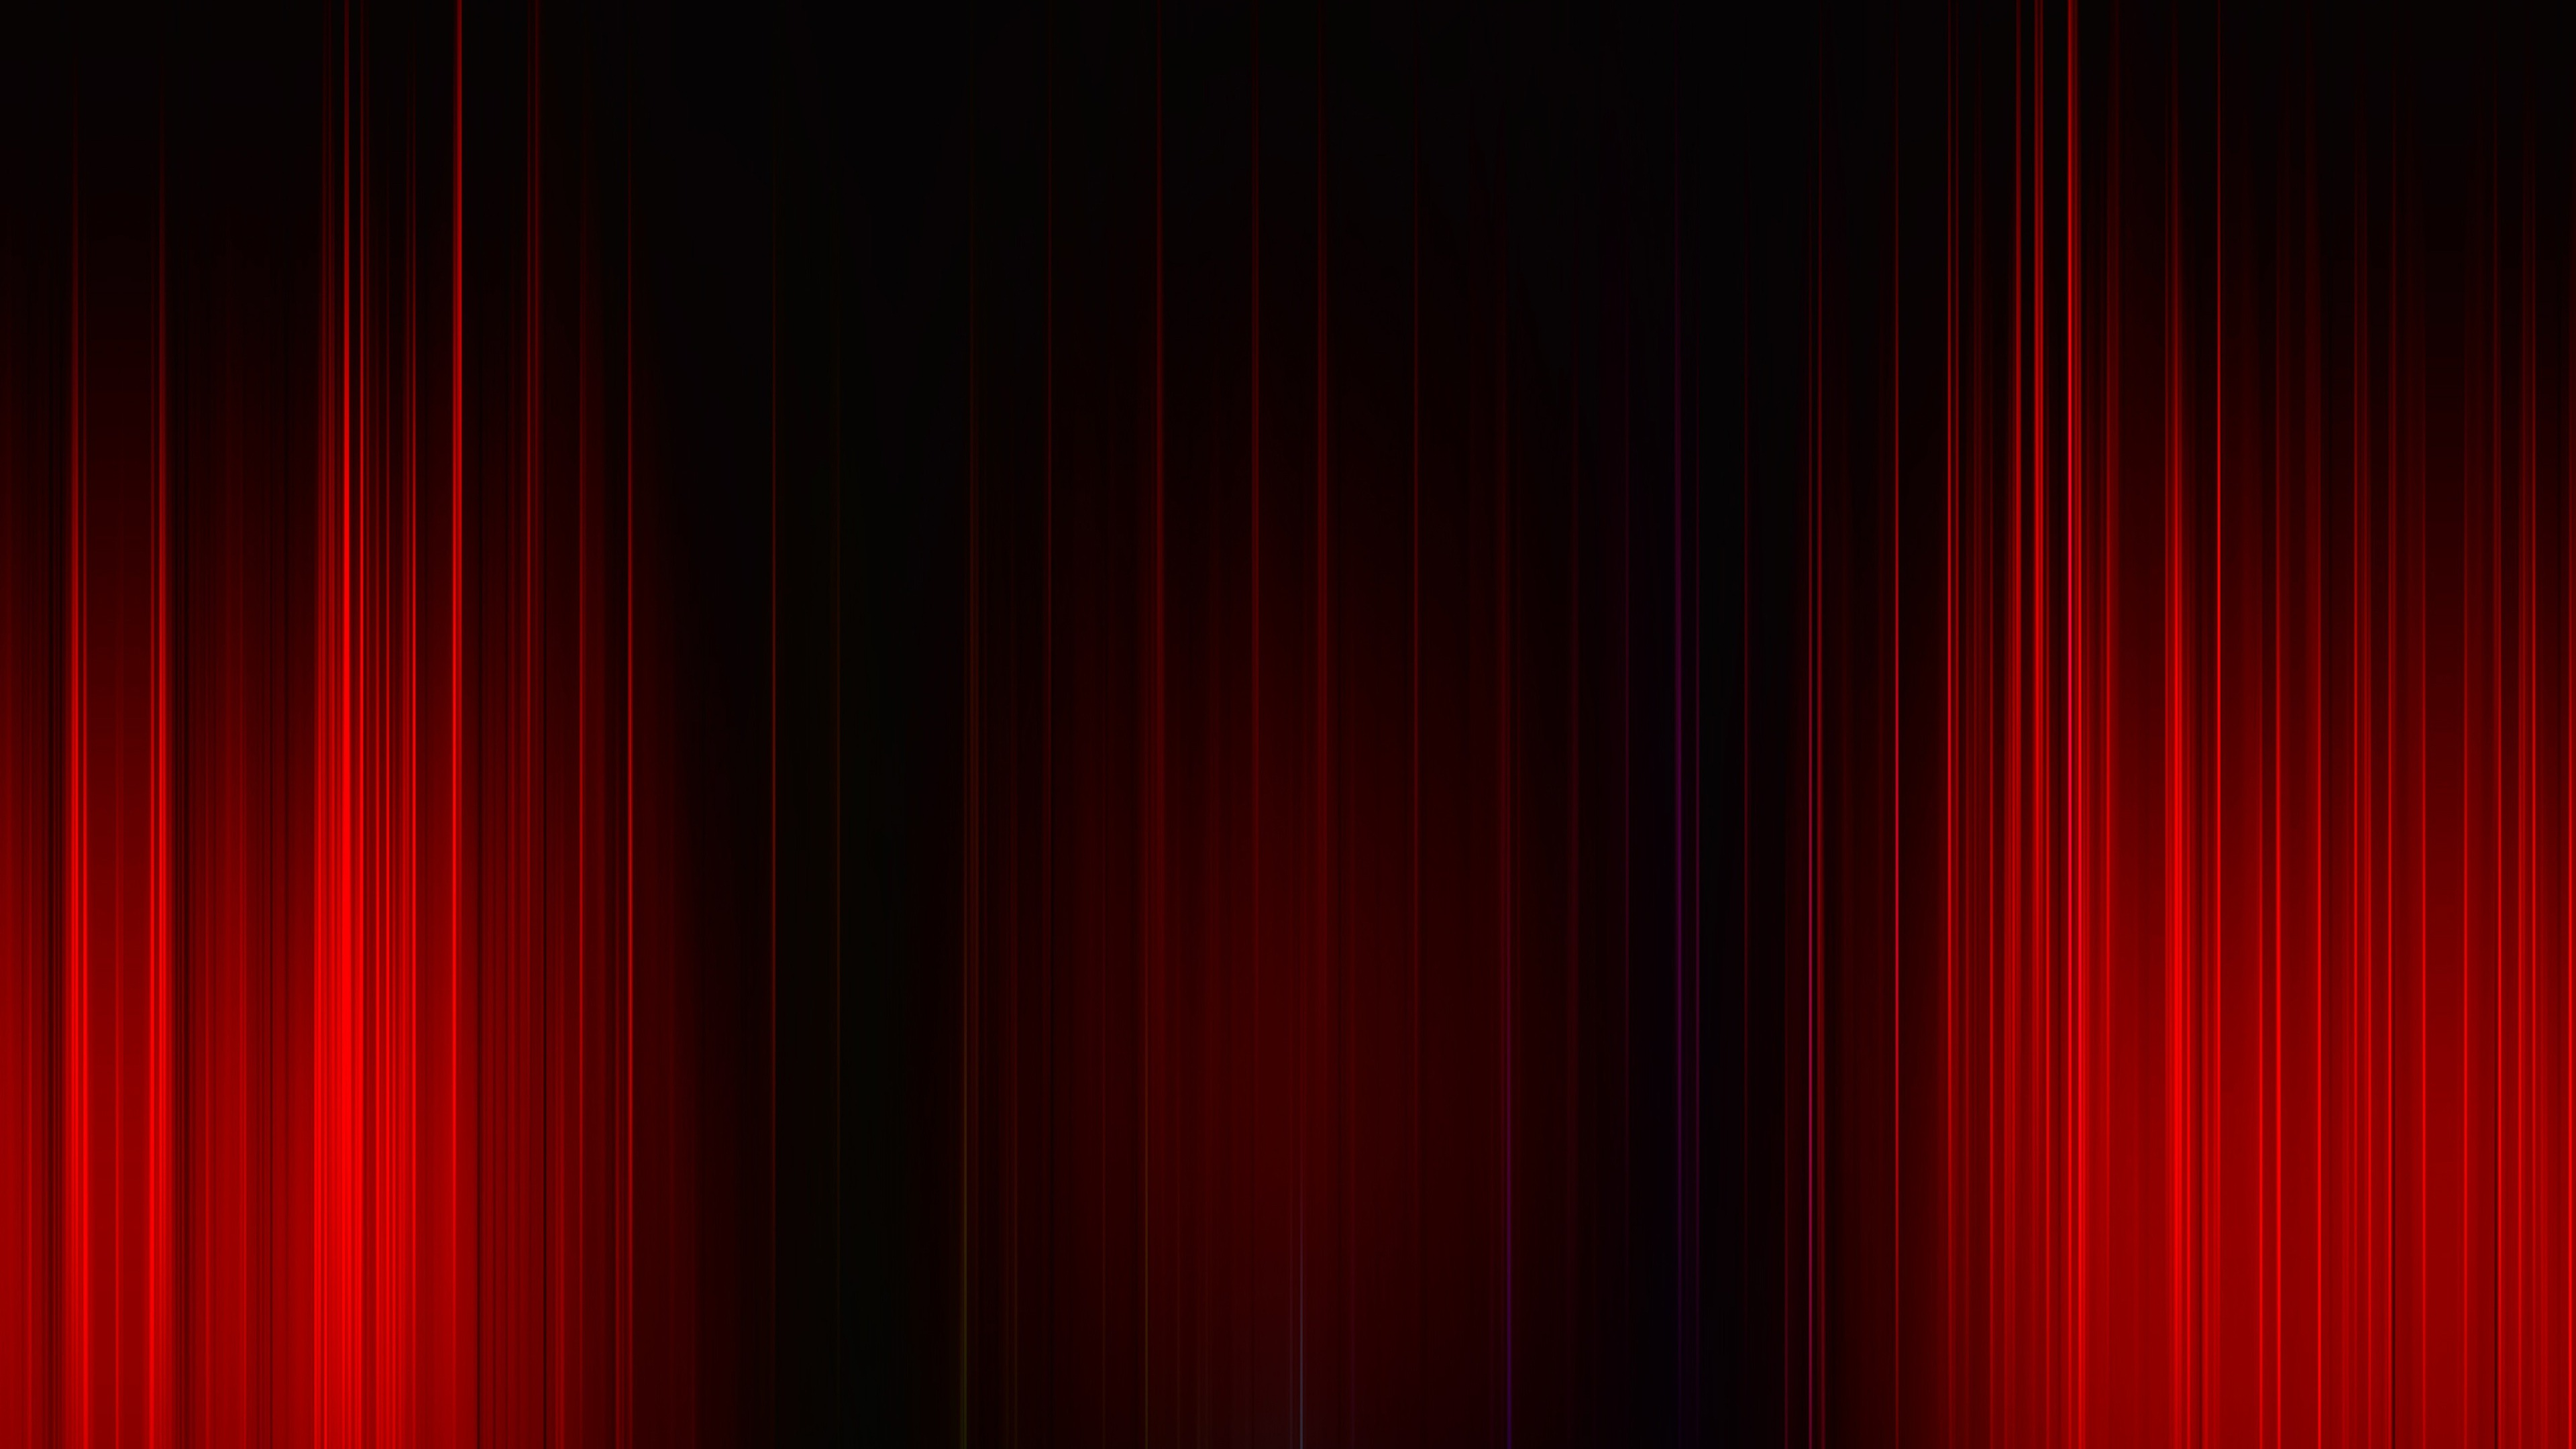 Dreamy Girl Wallpapers Red Rays Glare Abstract Black Background Preview